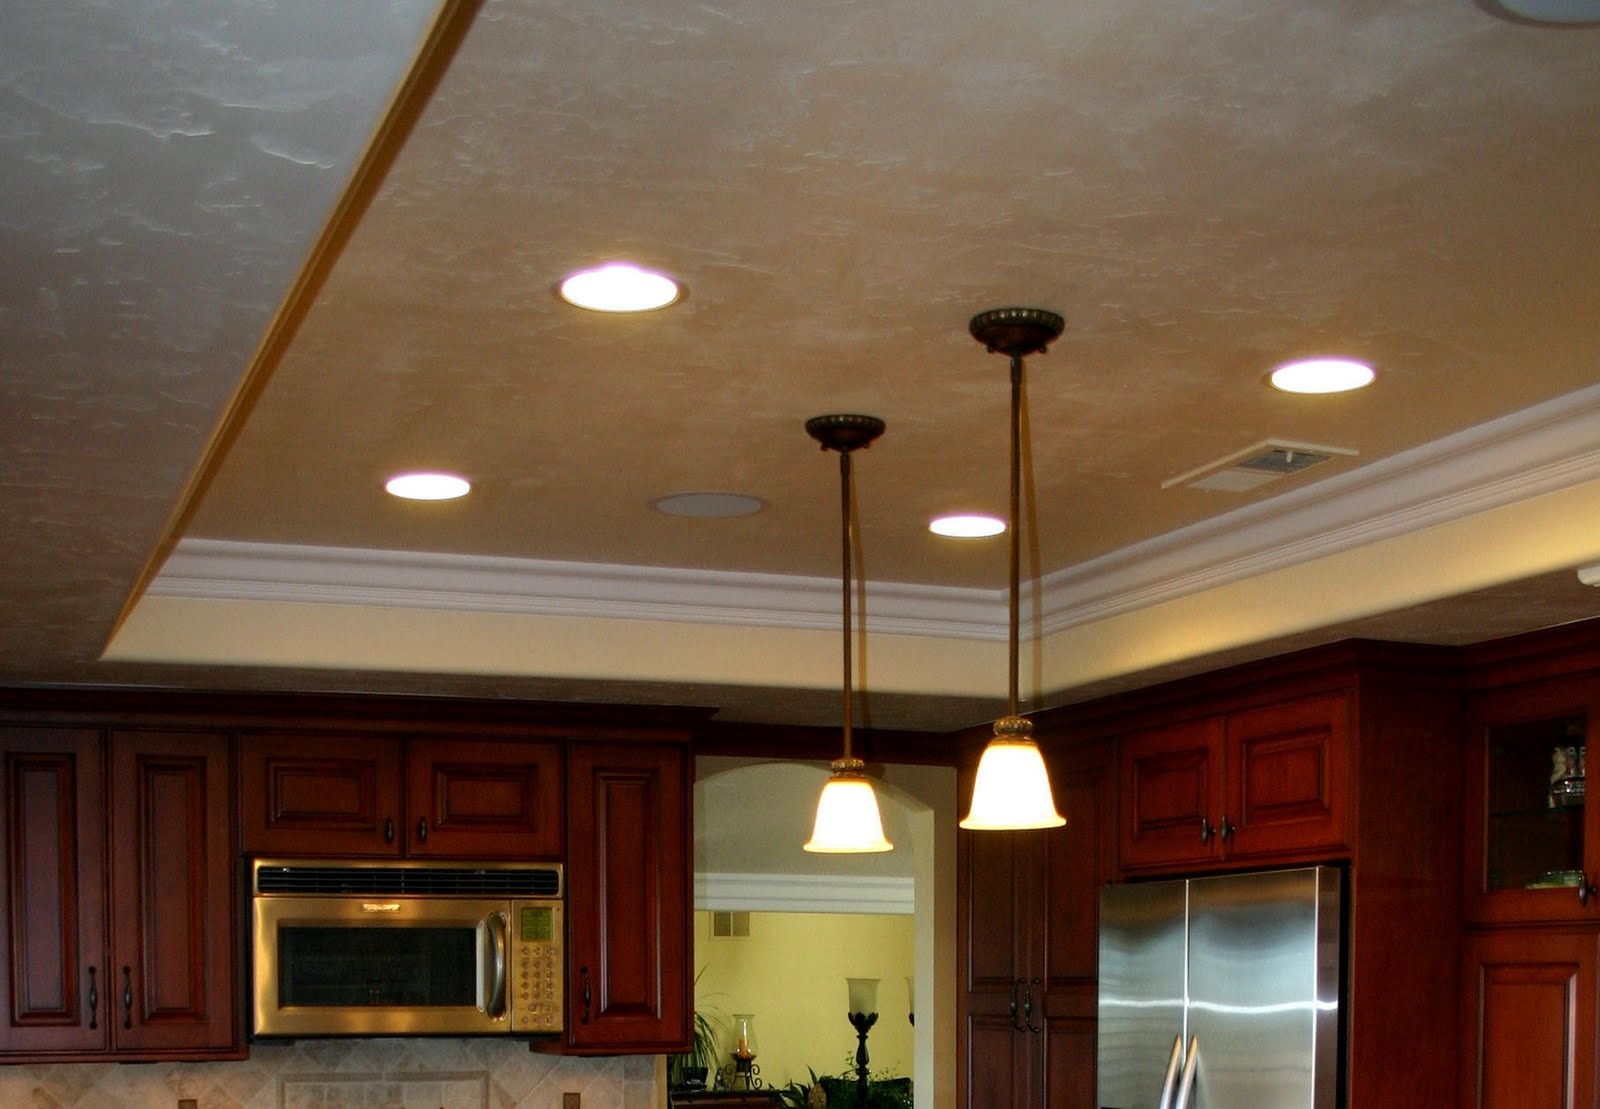 Kitchen ceiling ideas modern diy art designs - Wondrous kitchen ceiling designs ...